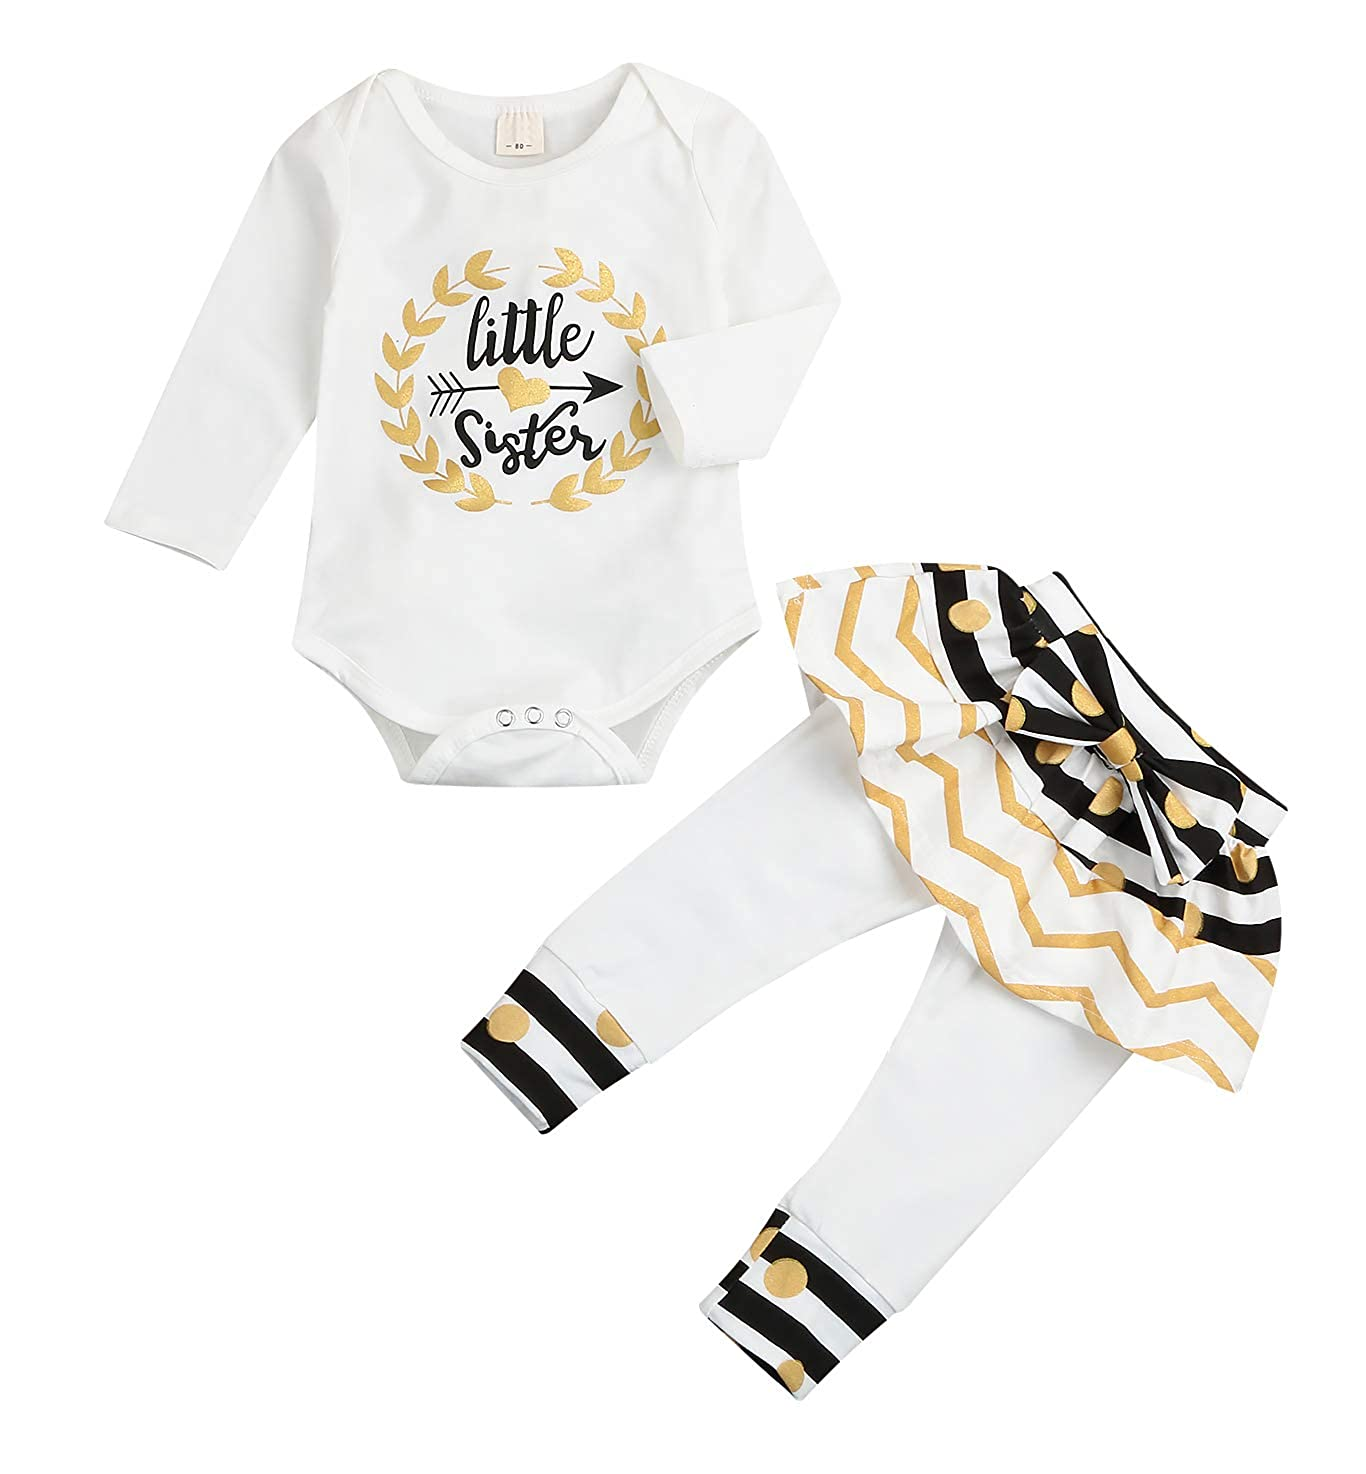 6b460ed37 Online Cheap wholesale Newborn Little Sister Baby Little Girls Skirts  Leggings Pants Gifts Outfits Set Pant Sets Suppliers